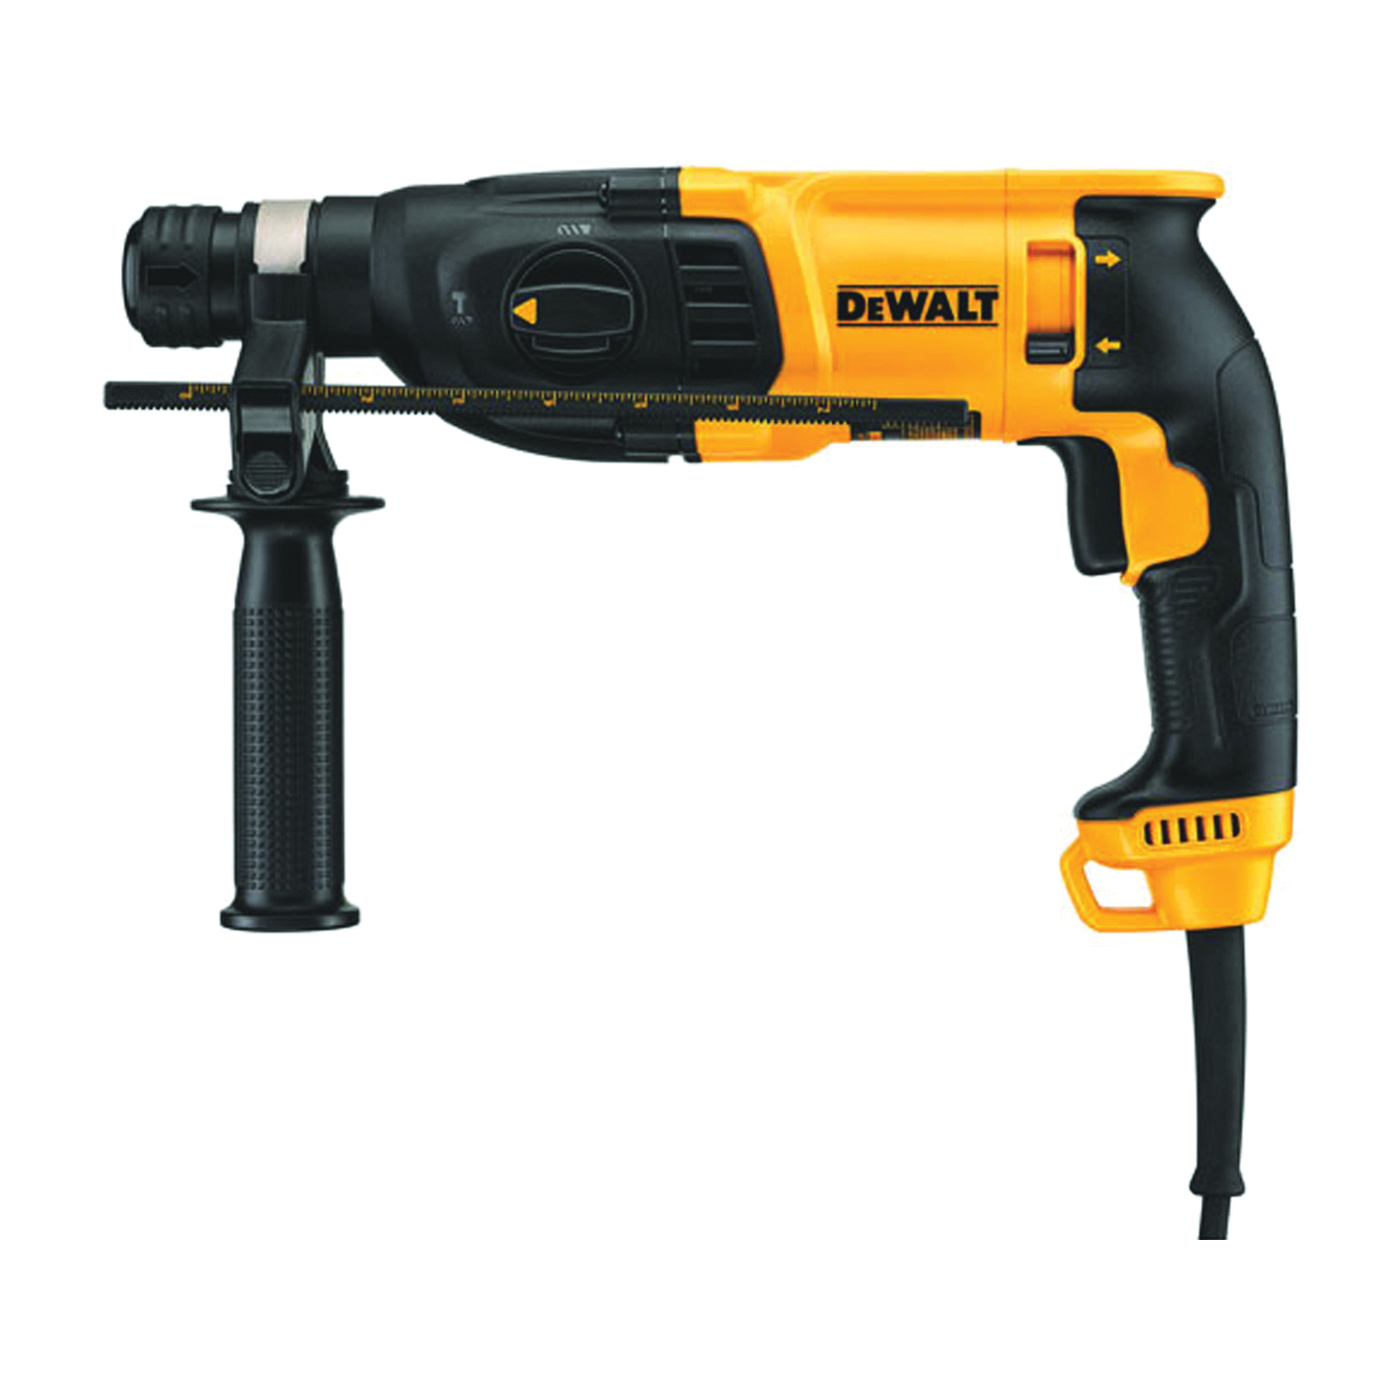 Picture of DeWALT D25133K Hammer, 120 V, 7 A, 5/32 to 5/8 in Concrete Drilling, 1/2 in Chuck, Keyless Chuck